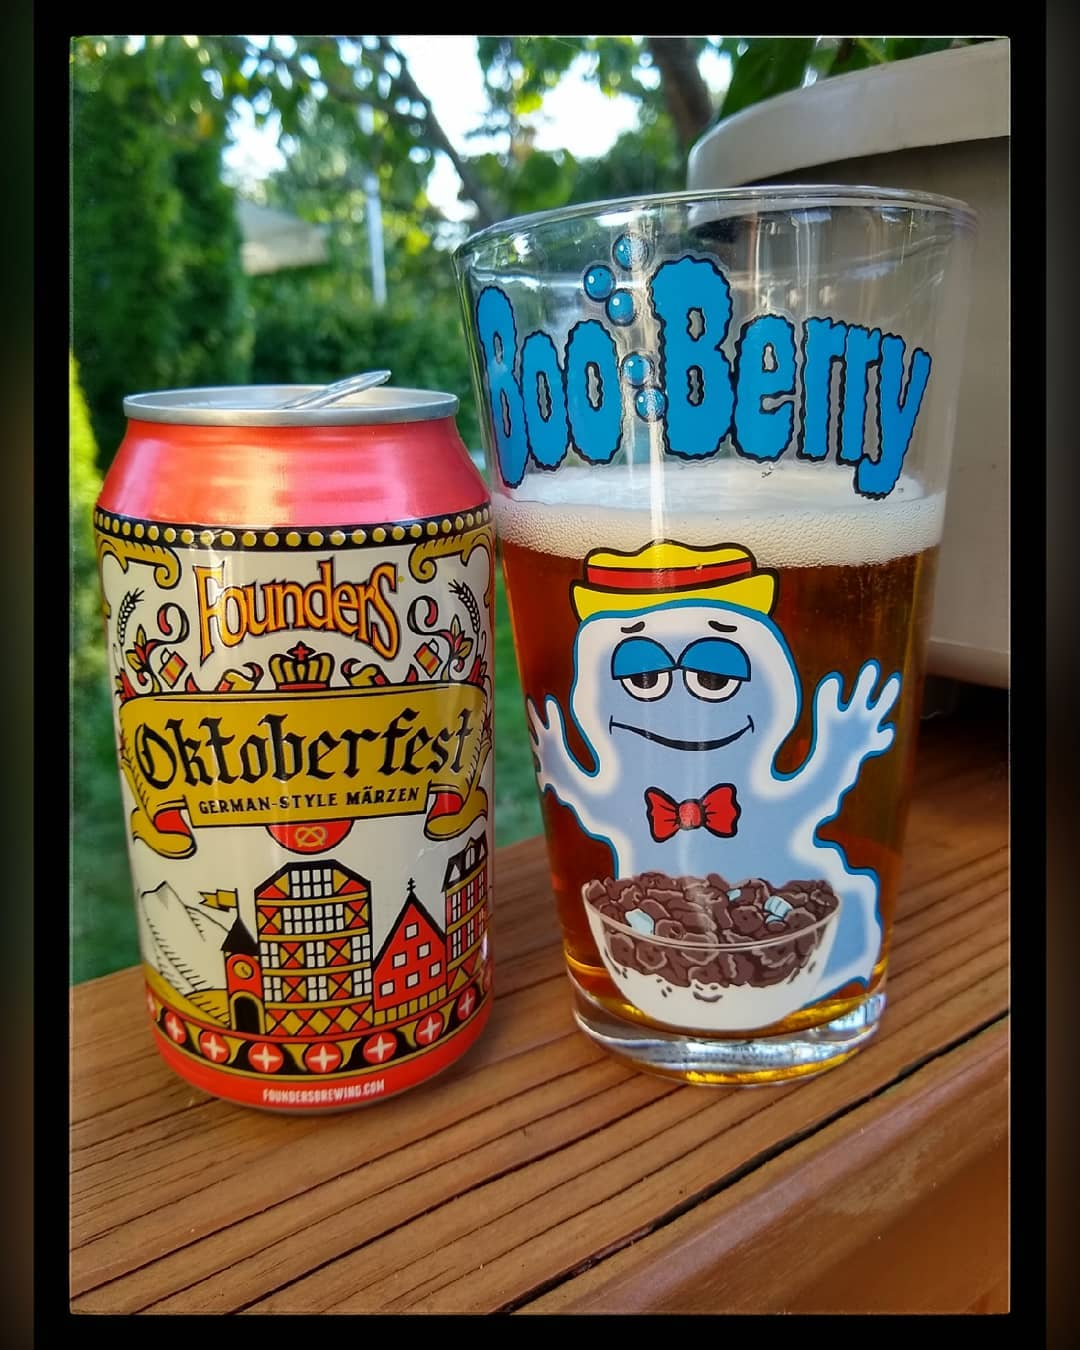 A pint glass with a pour branded with Boo Berry cereal next to a can of Oktoberfest.